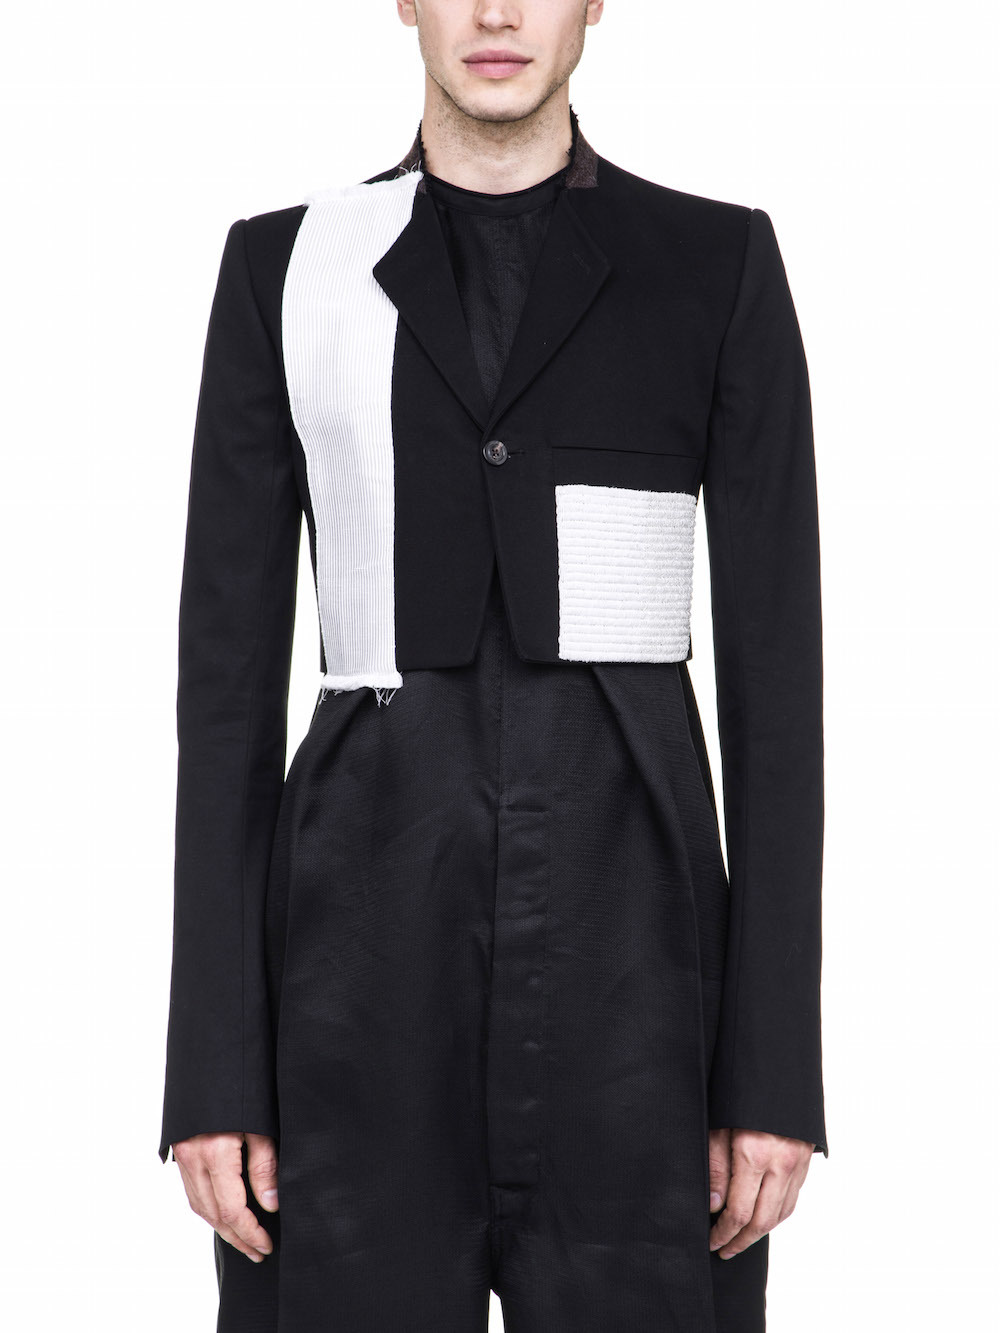 RICK OWENS MICRO TATCH JACKET IN BLACK FEATURES A SHORT LENGTH